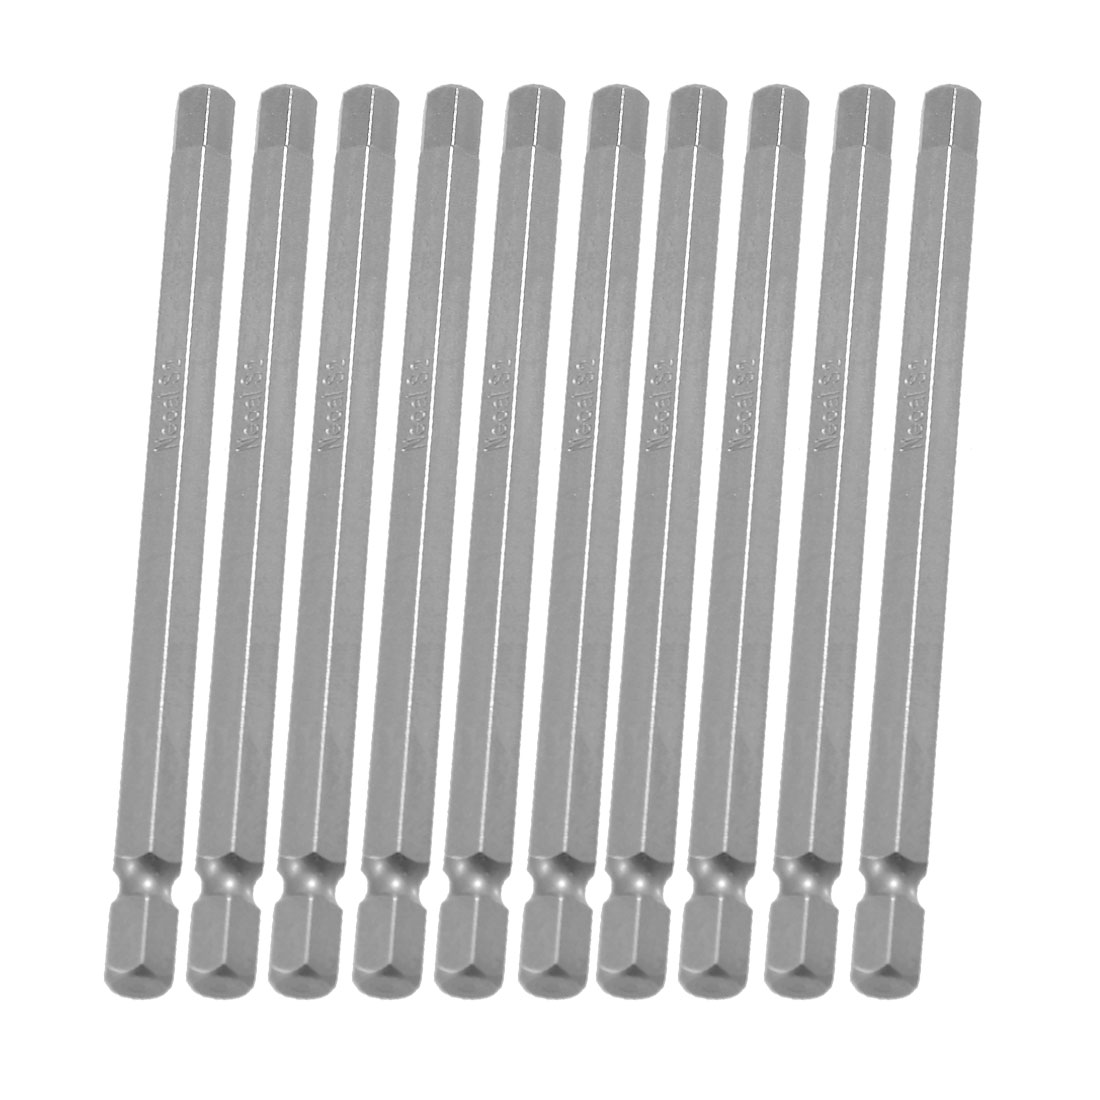 "10 Pcs 1/4"" x 100mm x 6mm Magnetic Hex Hexagon Tip Screwdriver Bits"